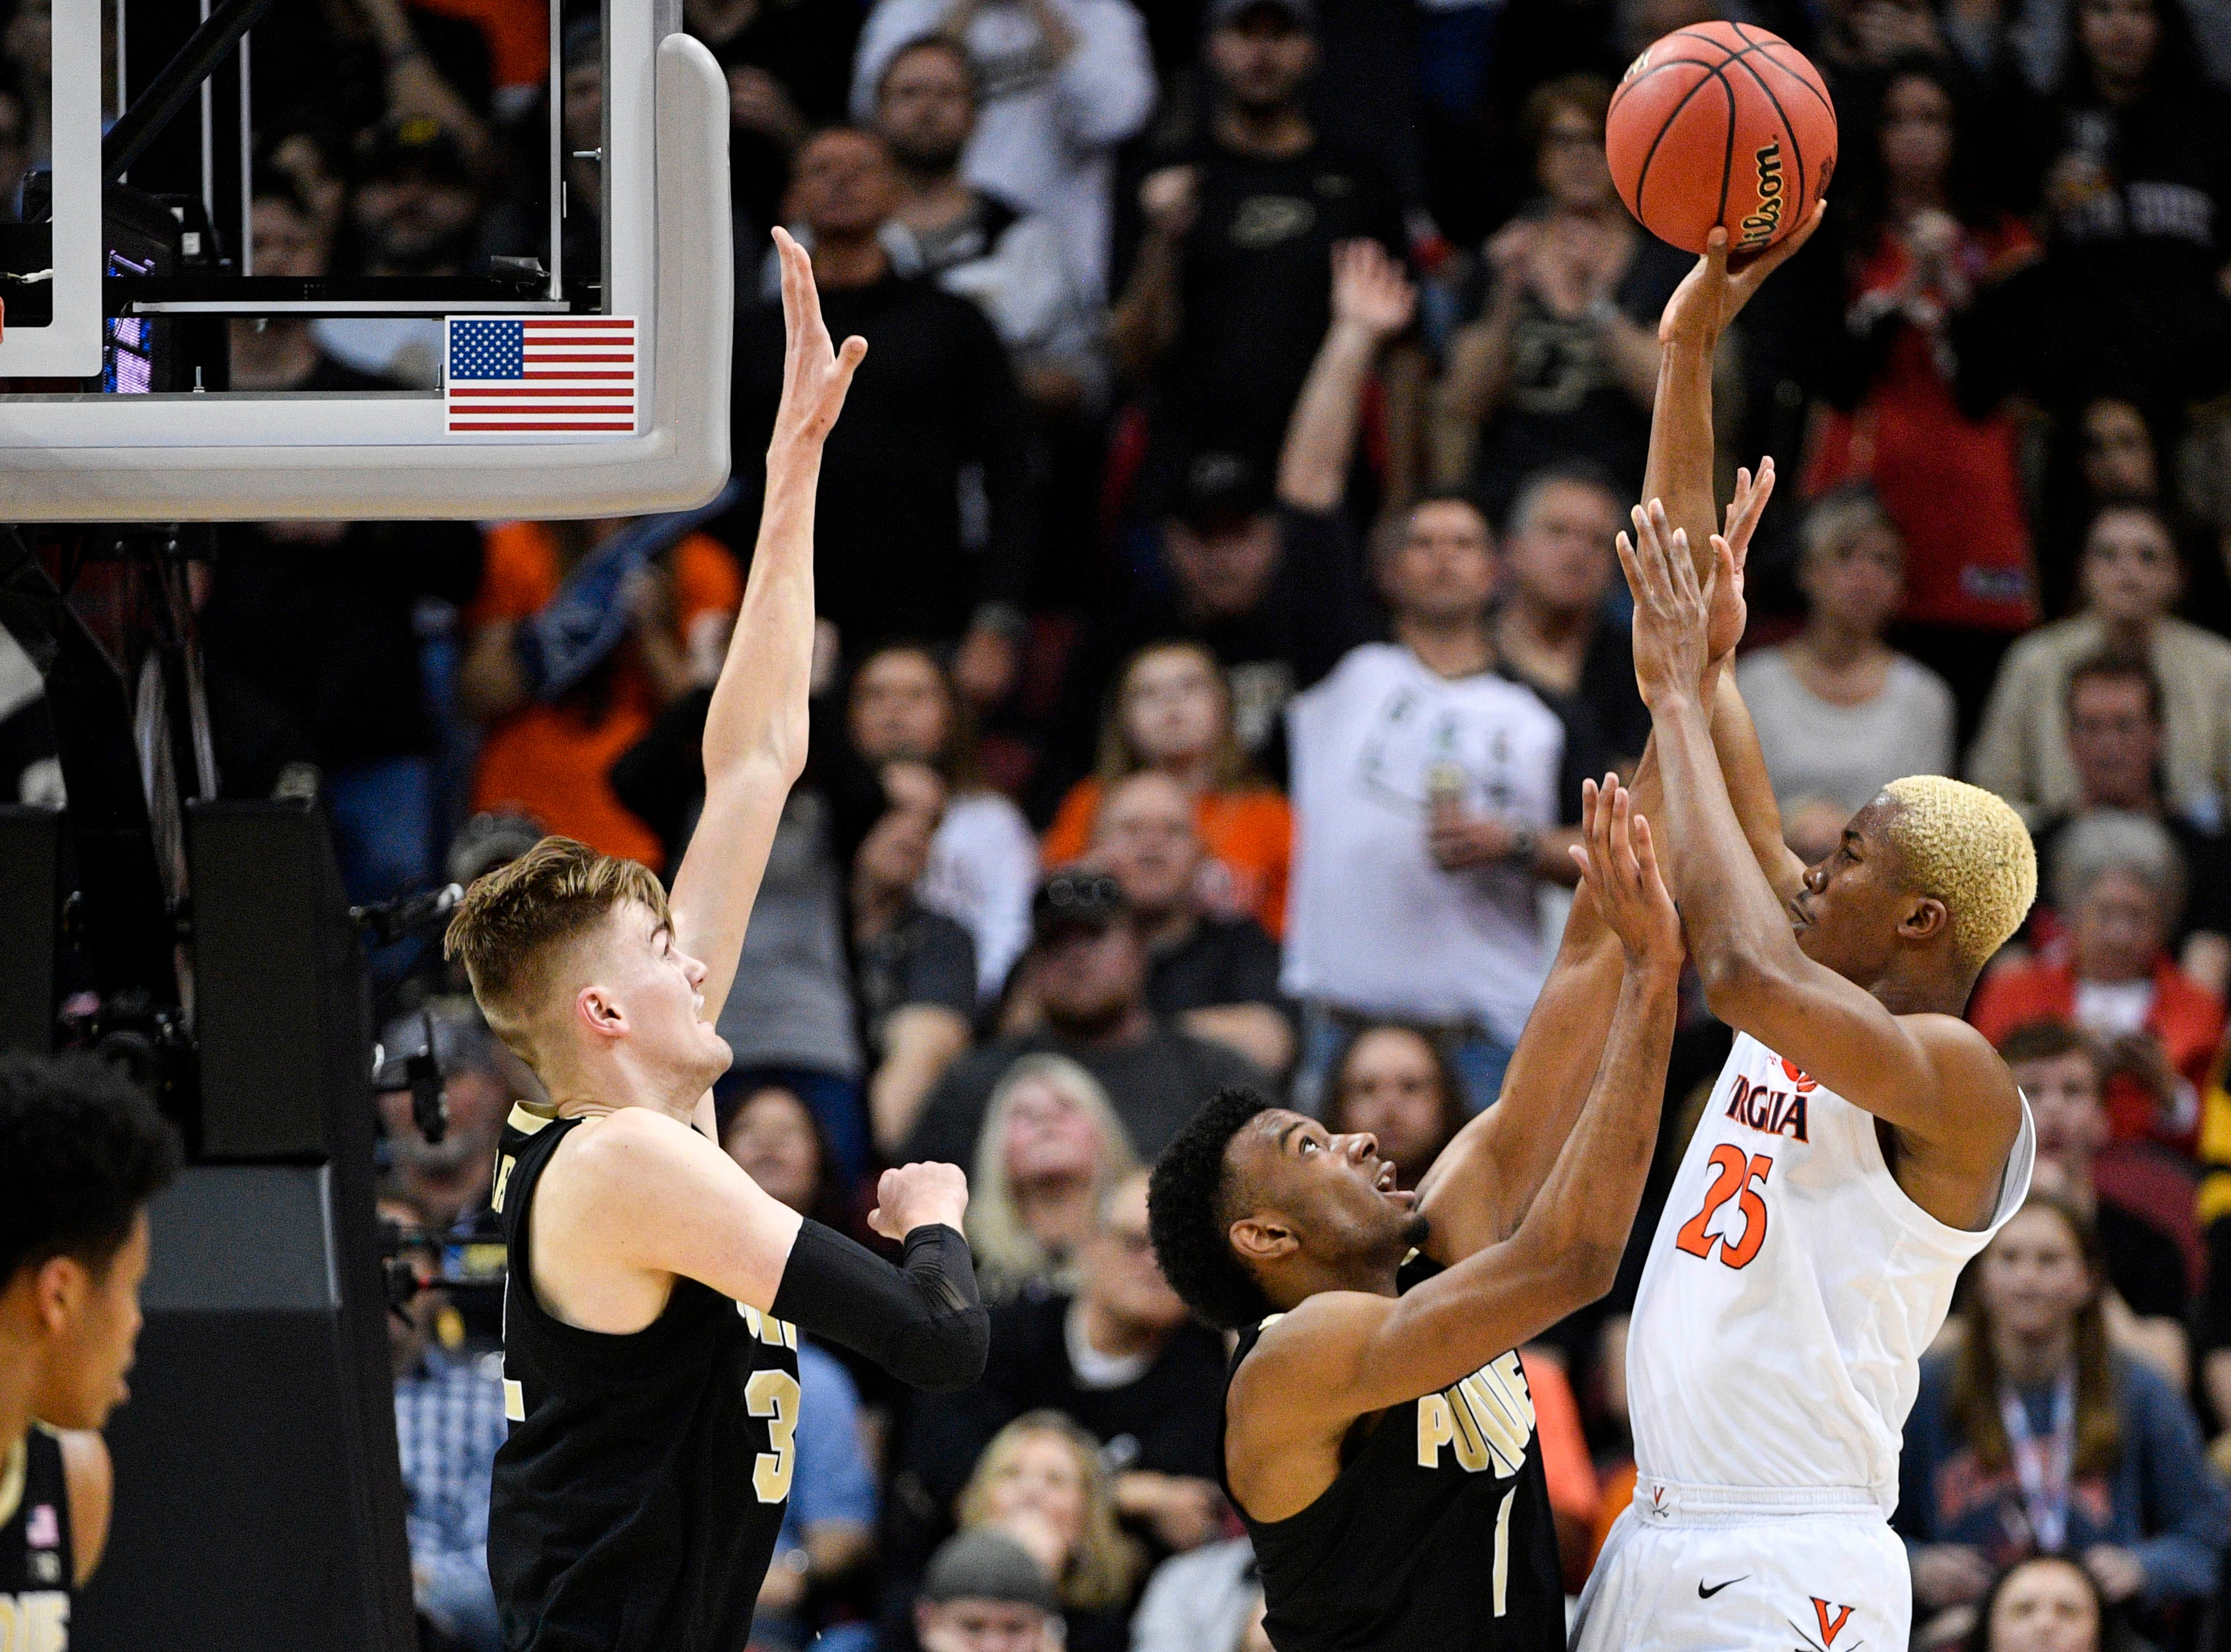 Mar 30, 2019; Louisville, KY, United States; Virginia Cavaliers forward Mamadi Diakite (25) shoots as Purdue Boilermakers forward Aaron Wheeler (1) and center Matt Haarms (32) defend during the second half in the championship game of the south regional of the 2019 NCAA Tournament at KFC Yum Center. Mandatory Credit: Jamie Rhodes-USA TODAY Sports